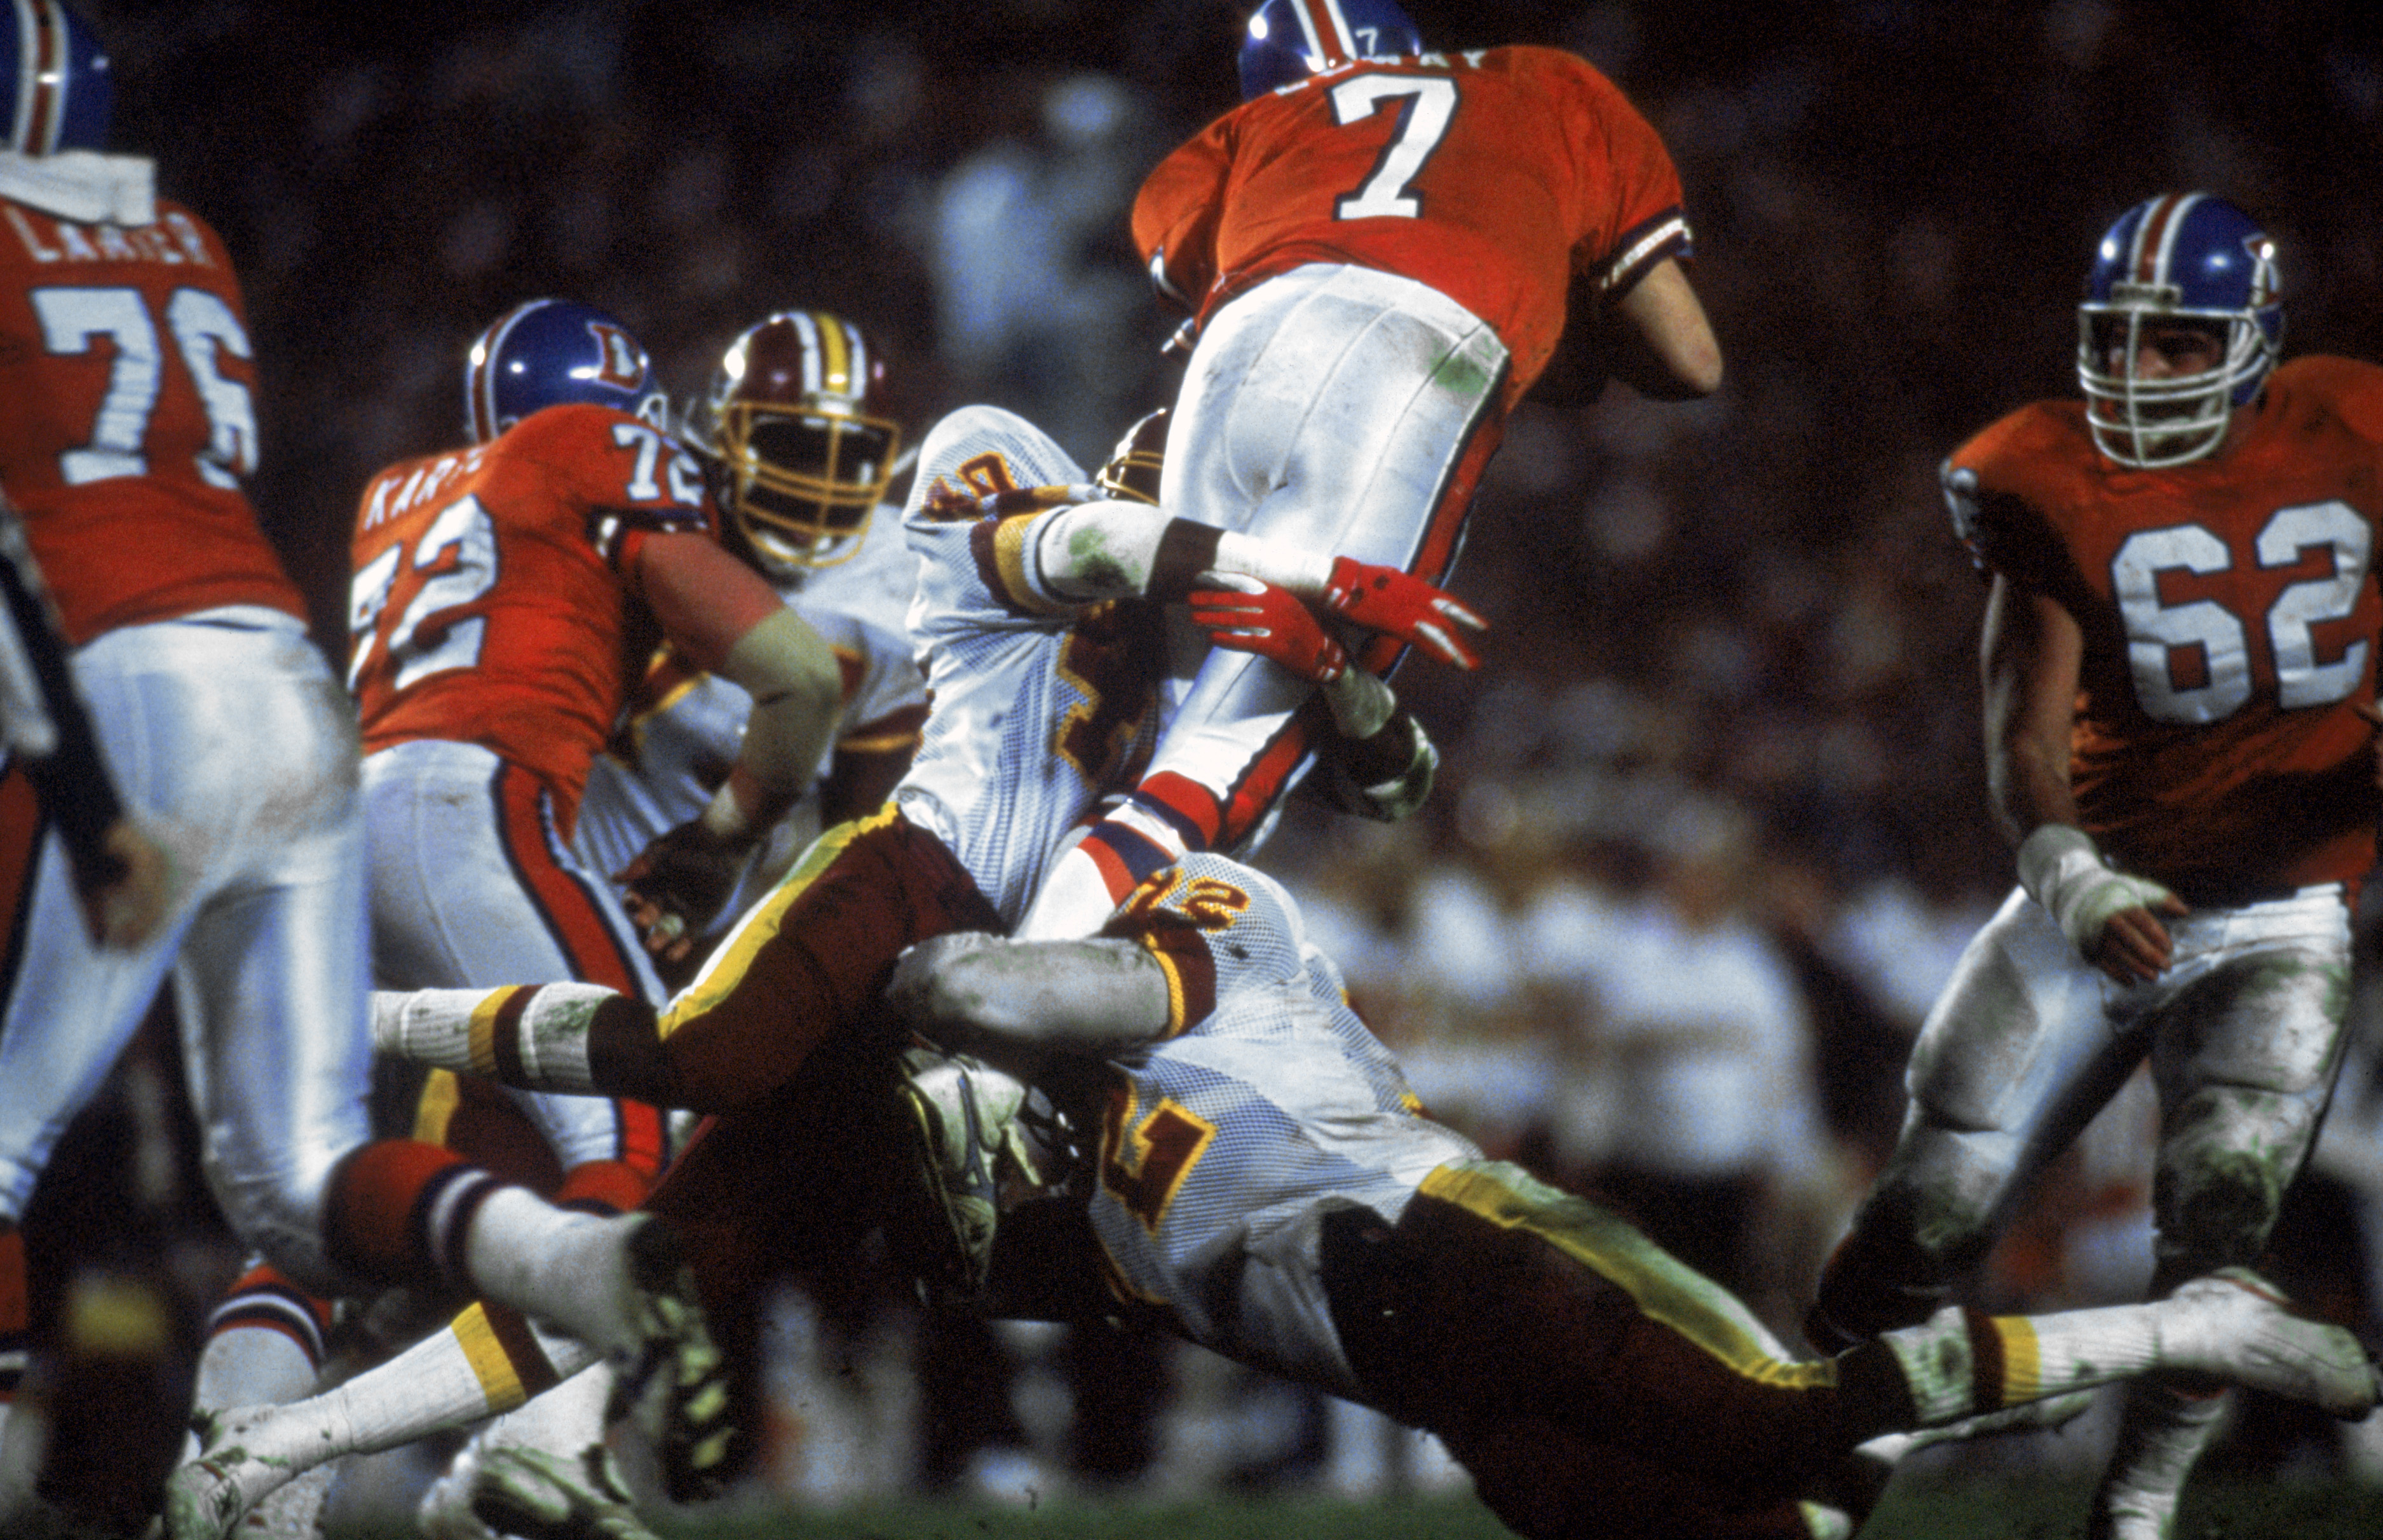 SAN DIEGO - JANUARY 31:  Dexter Manley #72 of the Washington Redskins assists in tackling quarterback John Elway #7 of the Denver Broncos during Superbowl XXII on January 31, 1988 at San Diego Jack Murphy Stadium in San Diego, California.  The Redskins de